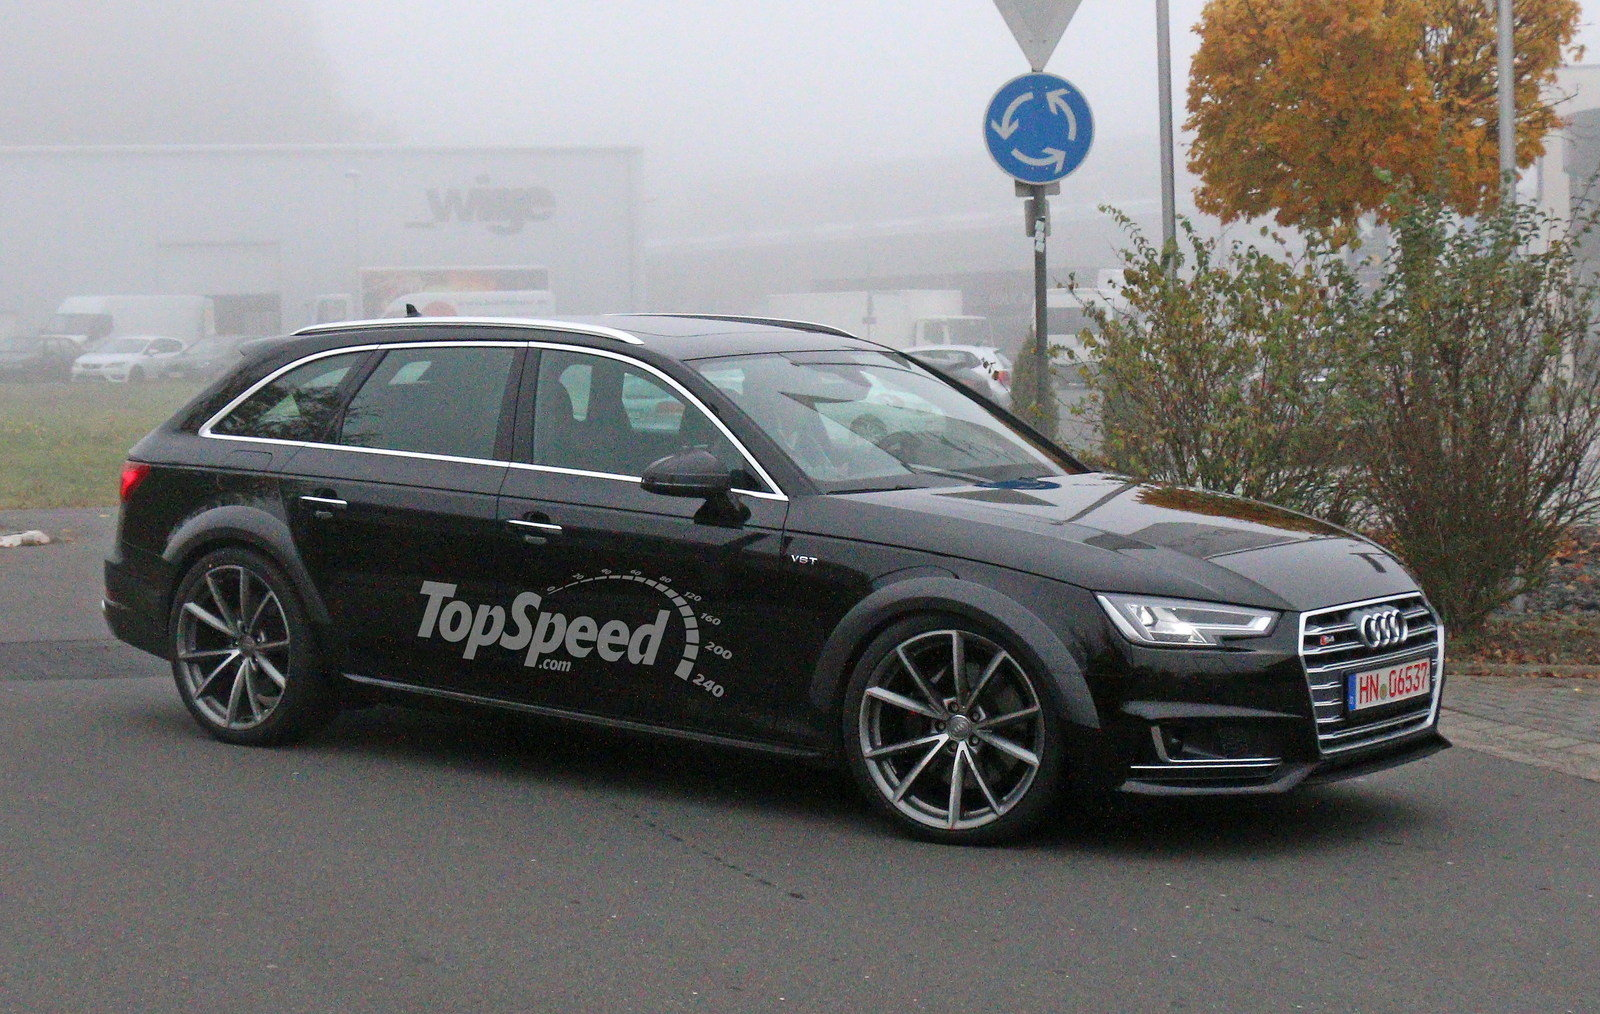 2017 audi rs4 avant picture 653387 car review top speed. Black Bedroom Furniture Sets. Home Design Ideas